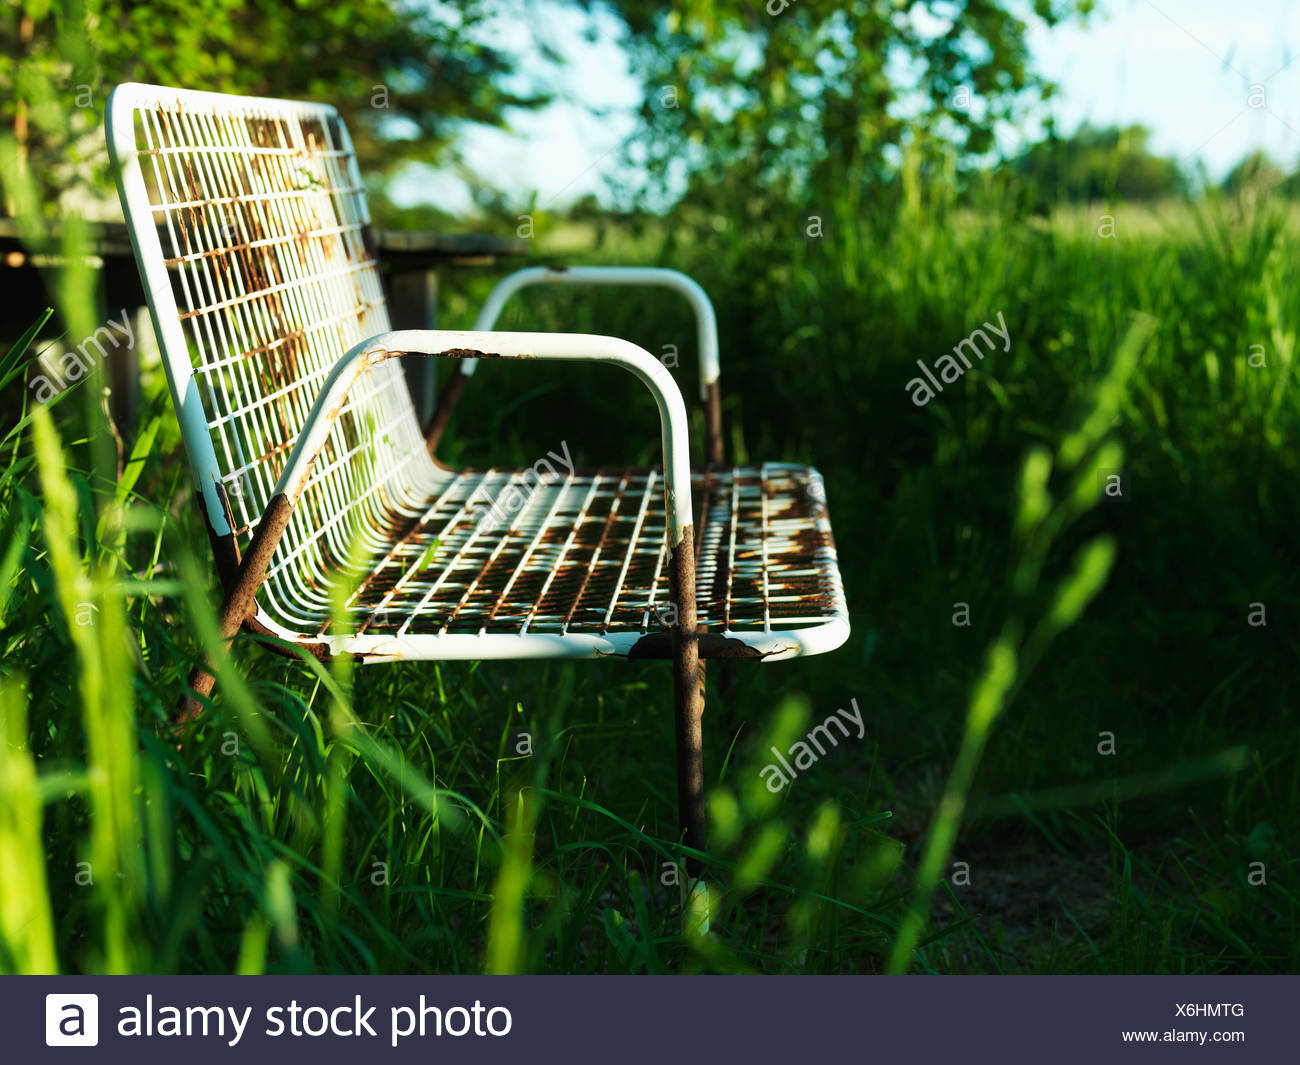 Empty park bench in grass - Stock Image